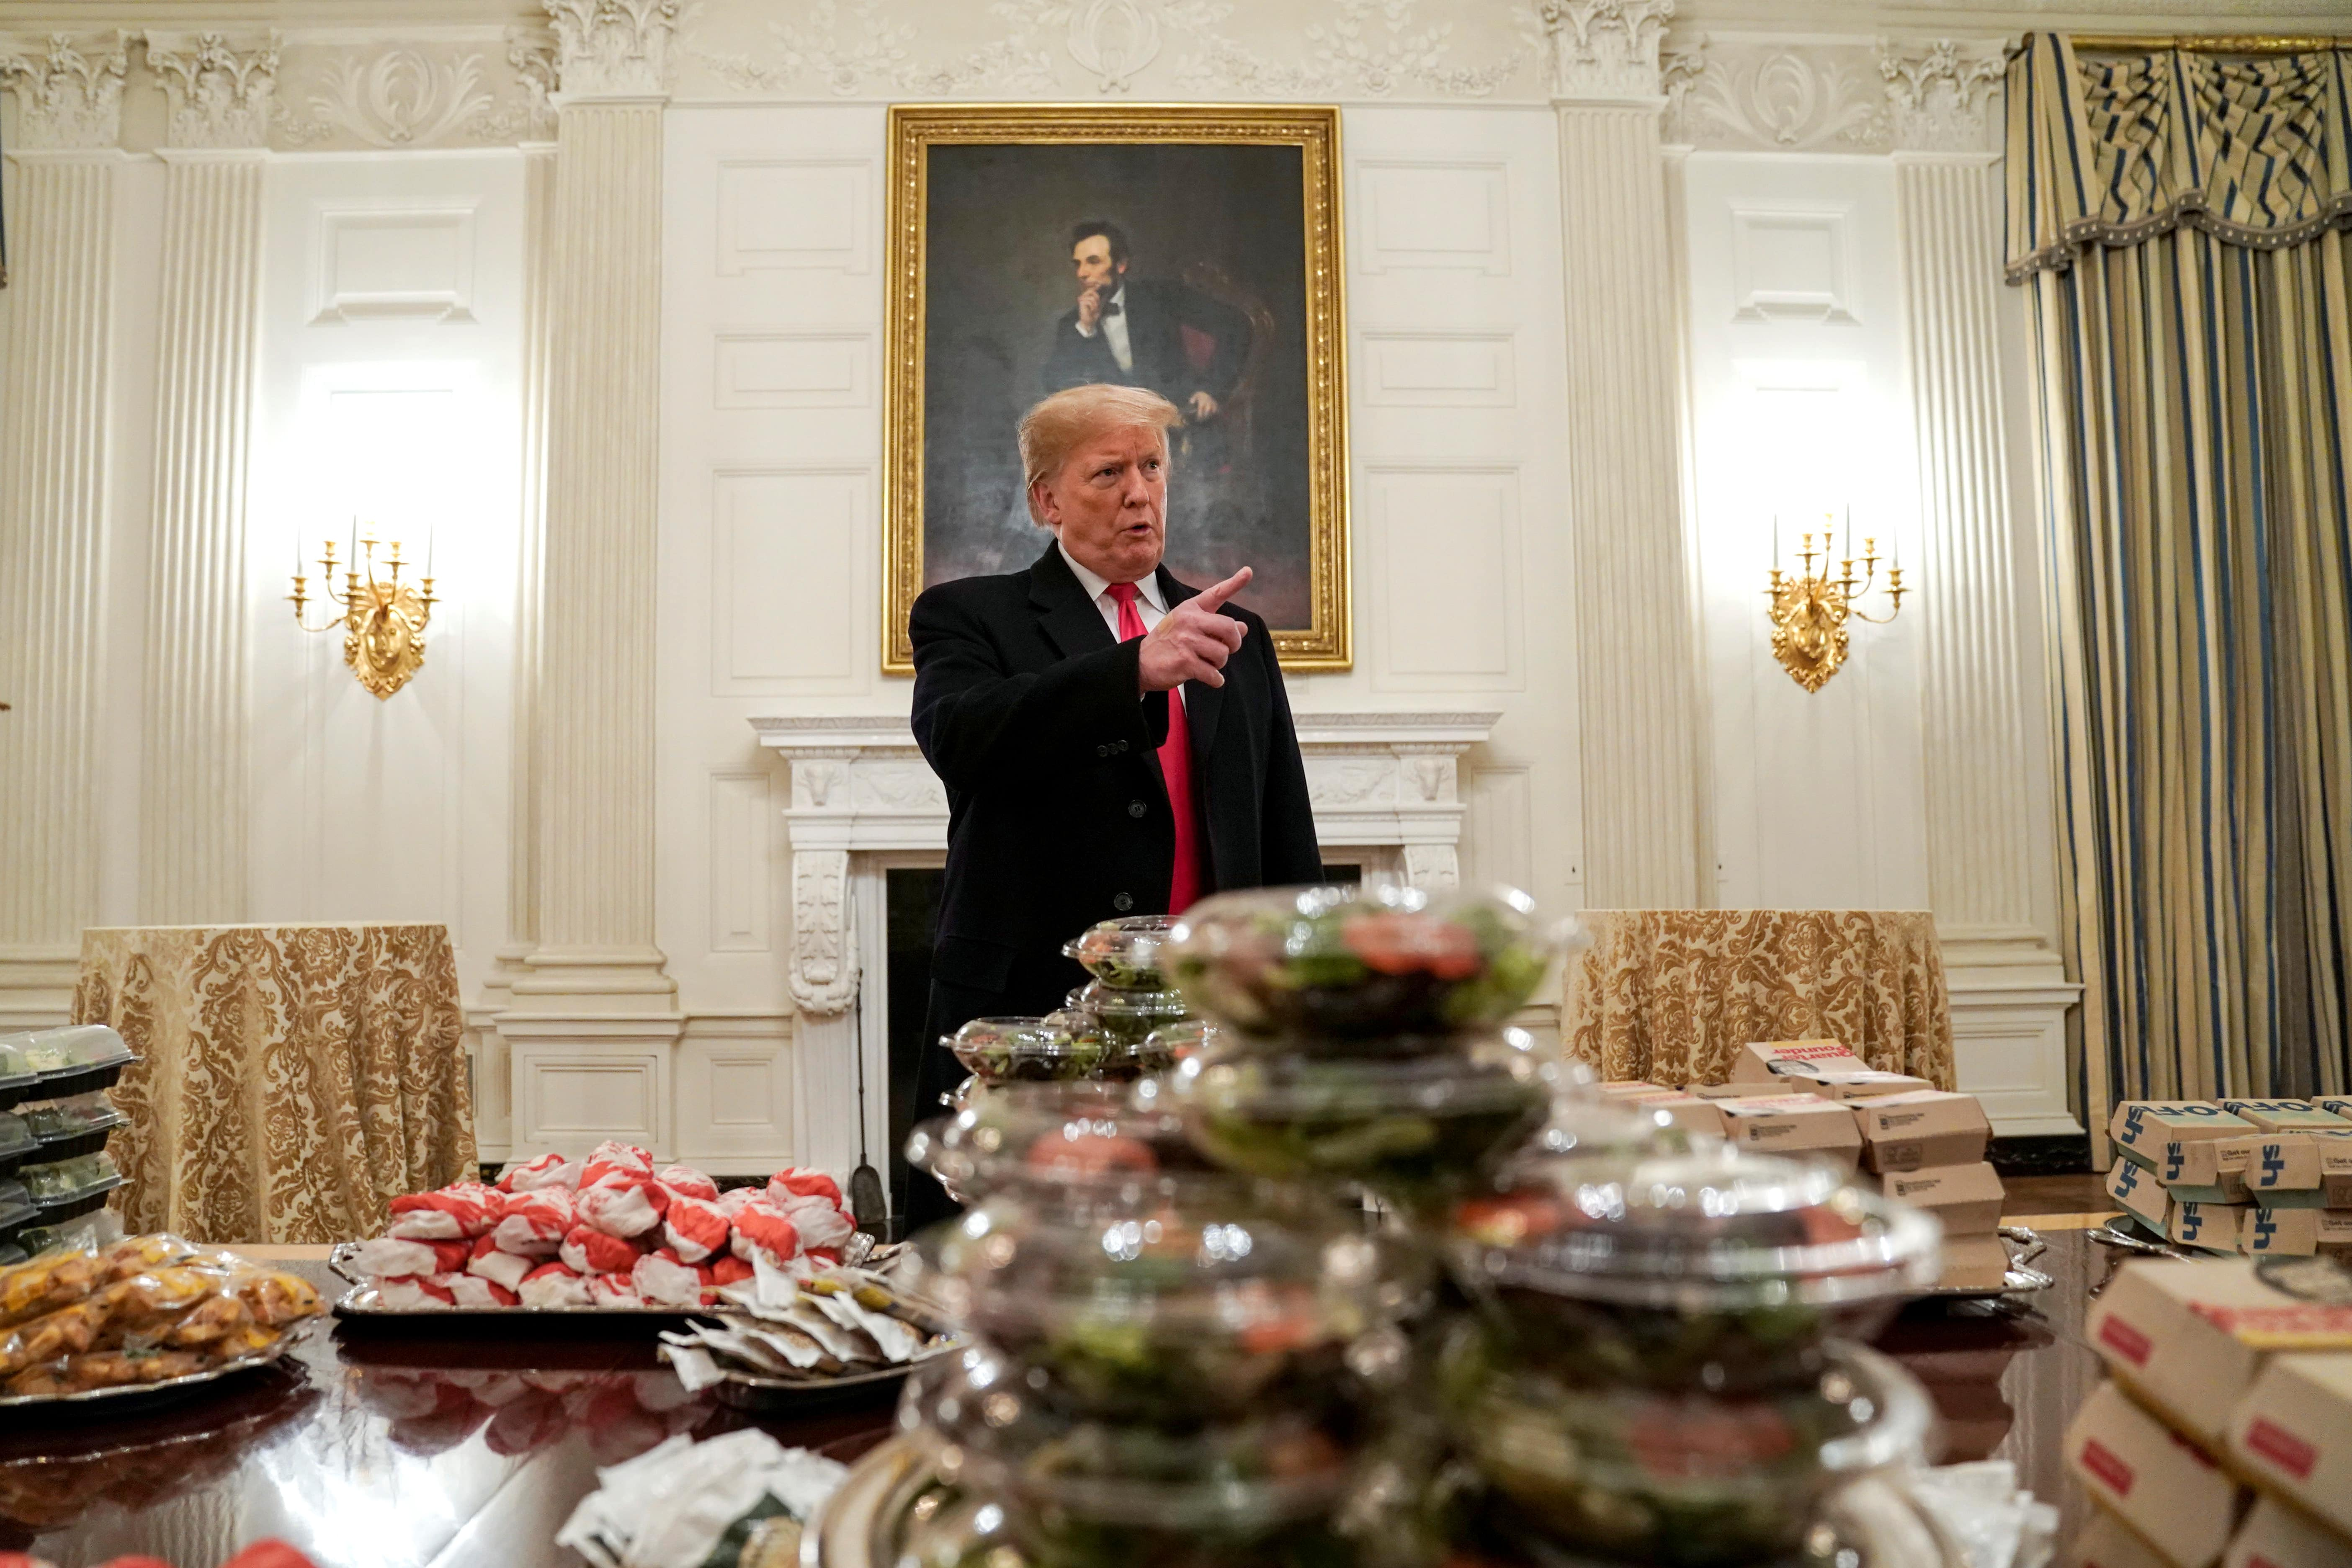 U.S. President Donald Trump speaks in front of fast food provided for the 2018 College Football Playoff National Champion Clemson Tigers due to the partial government shutdown in the State Dining Room of the White House in Washington, U.S., January 14, 2019. REUTERS/Joshua Roberts T